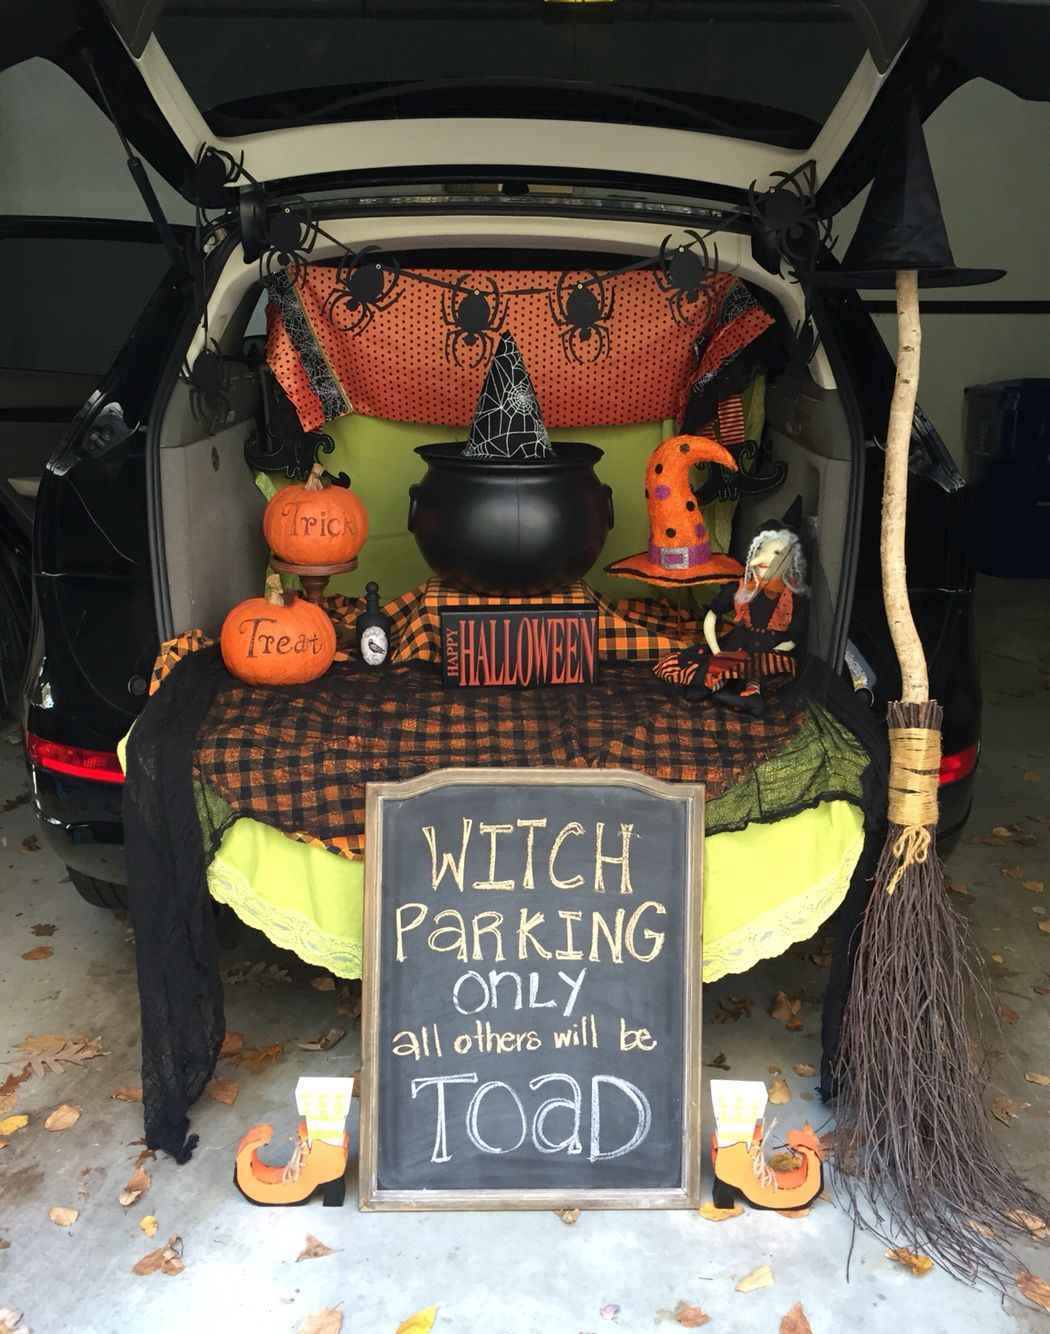 16 Trunk or Treat Decorating Ideas - Futurist Architecture & Witches hang out. Trunk or treat. | trunk or treat | Pinterest ...